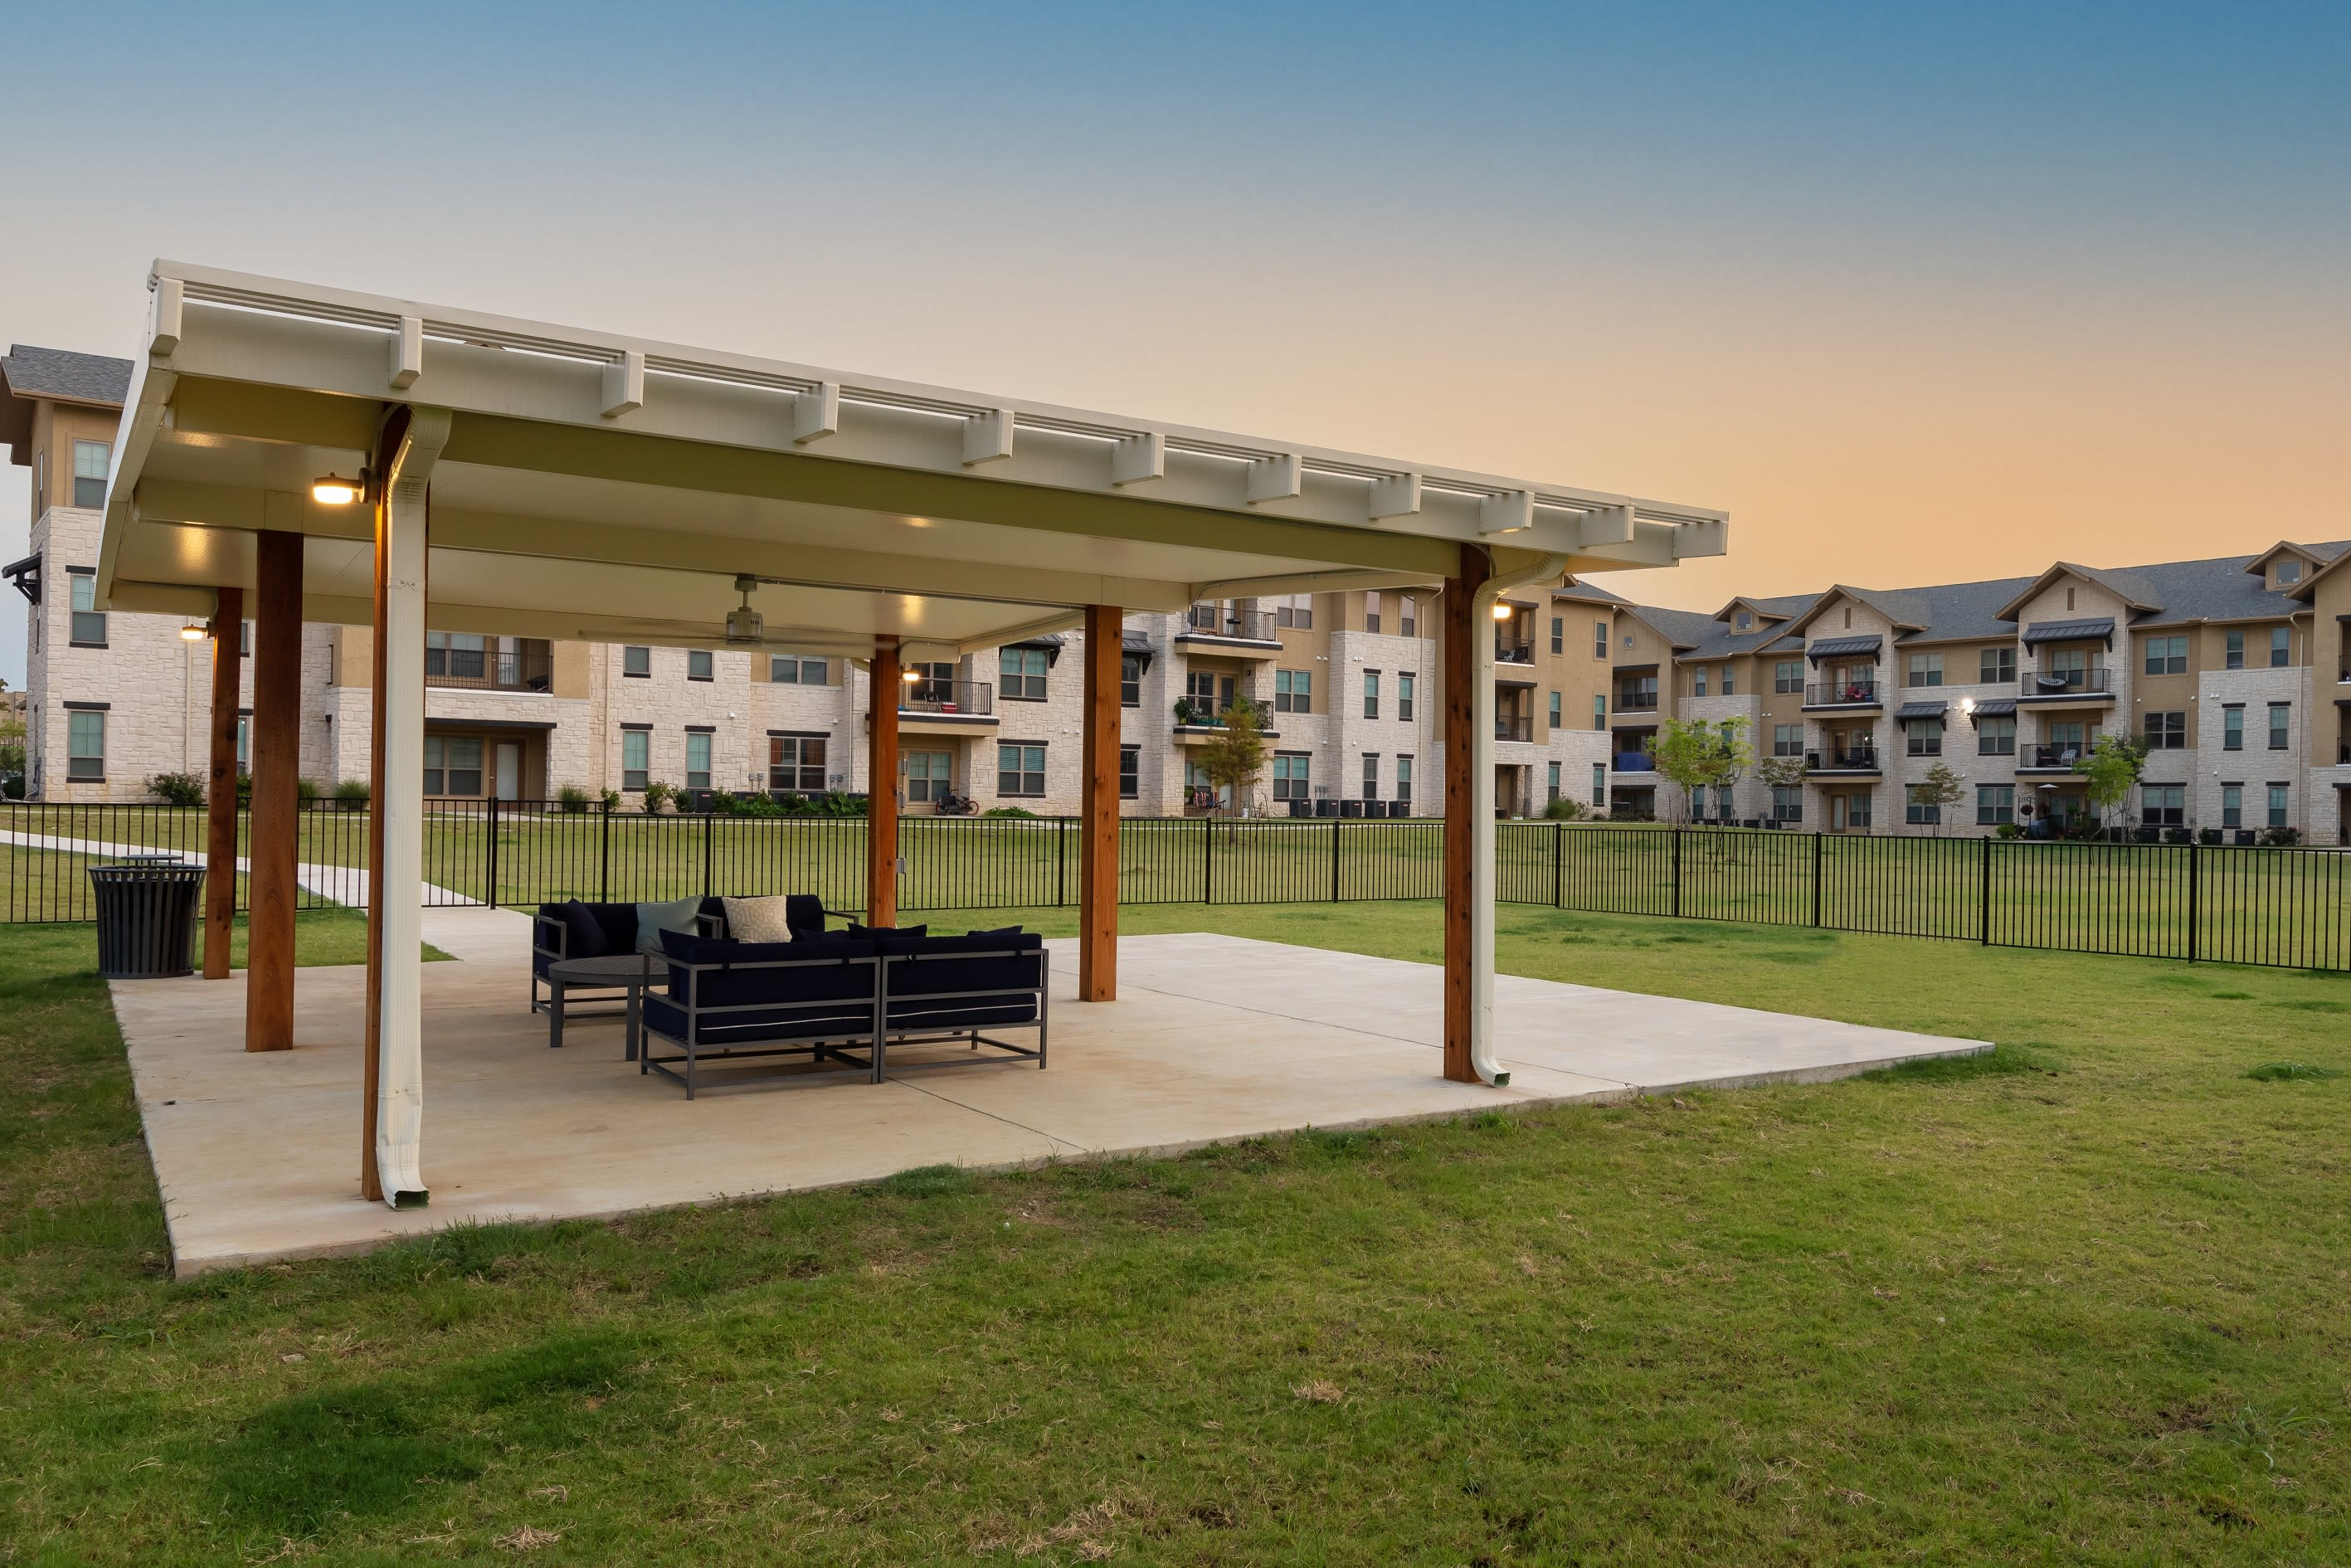 Outdoor space for residents to enjoy at 4 Corners Apartments in Frisco, Texas